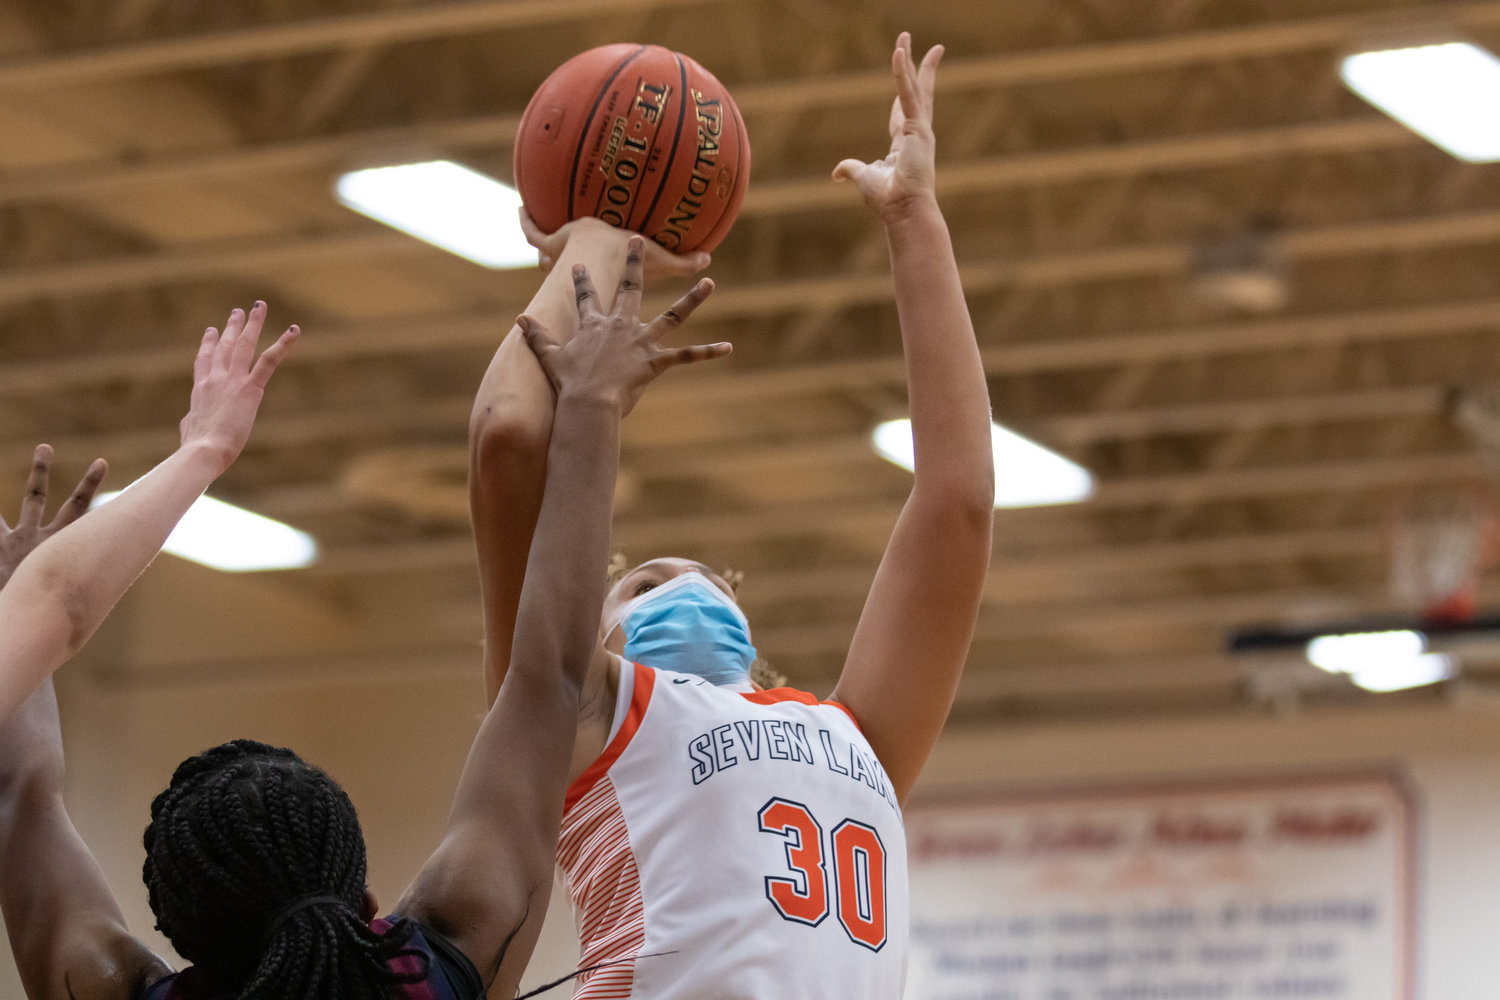 Seven Lakes freshman forward Justice Carlton goes up for a shot during a game against Tompkins on Tuesday, Dec. 29, at Seven Lakes High.